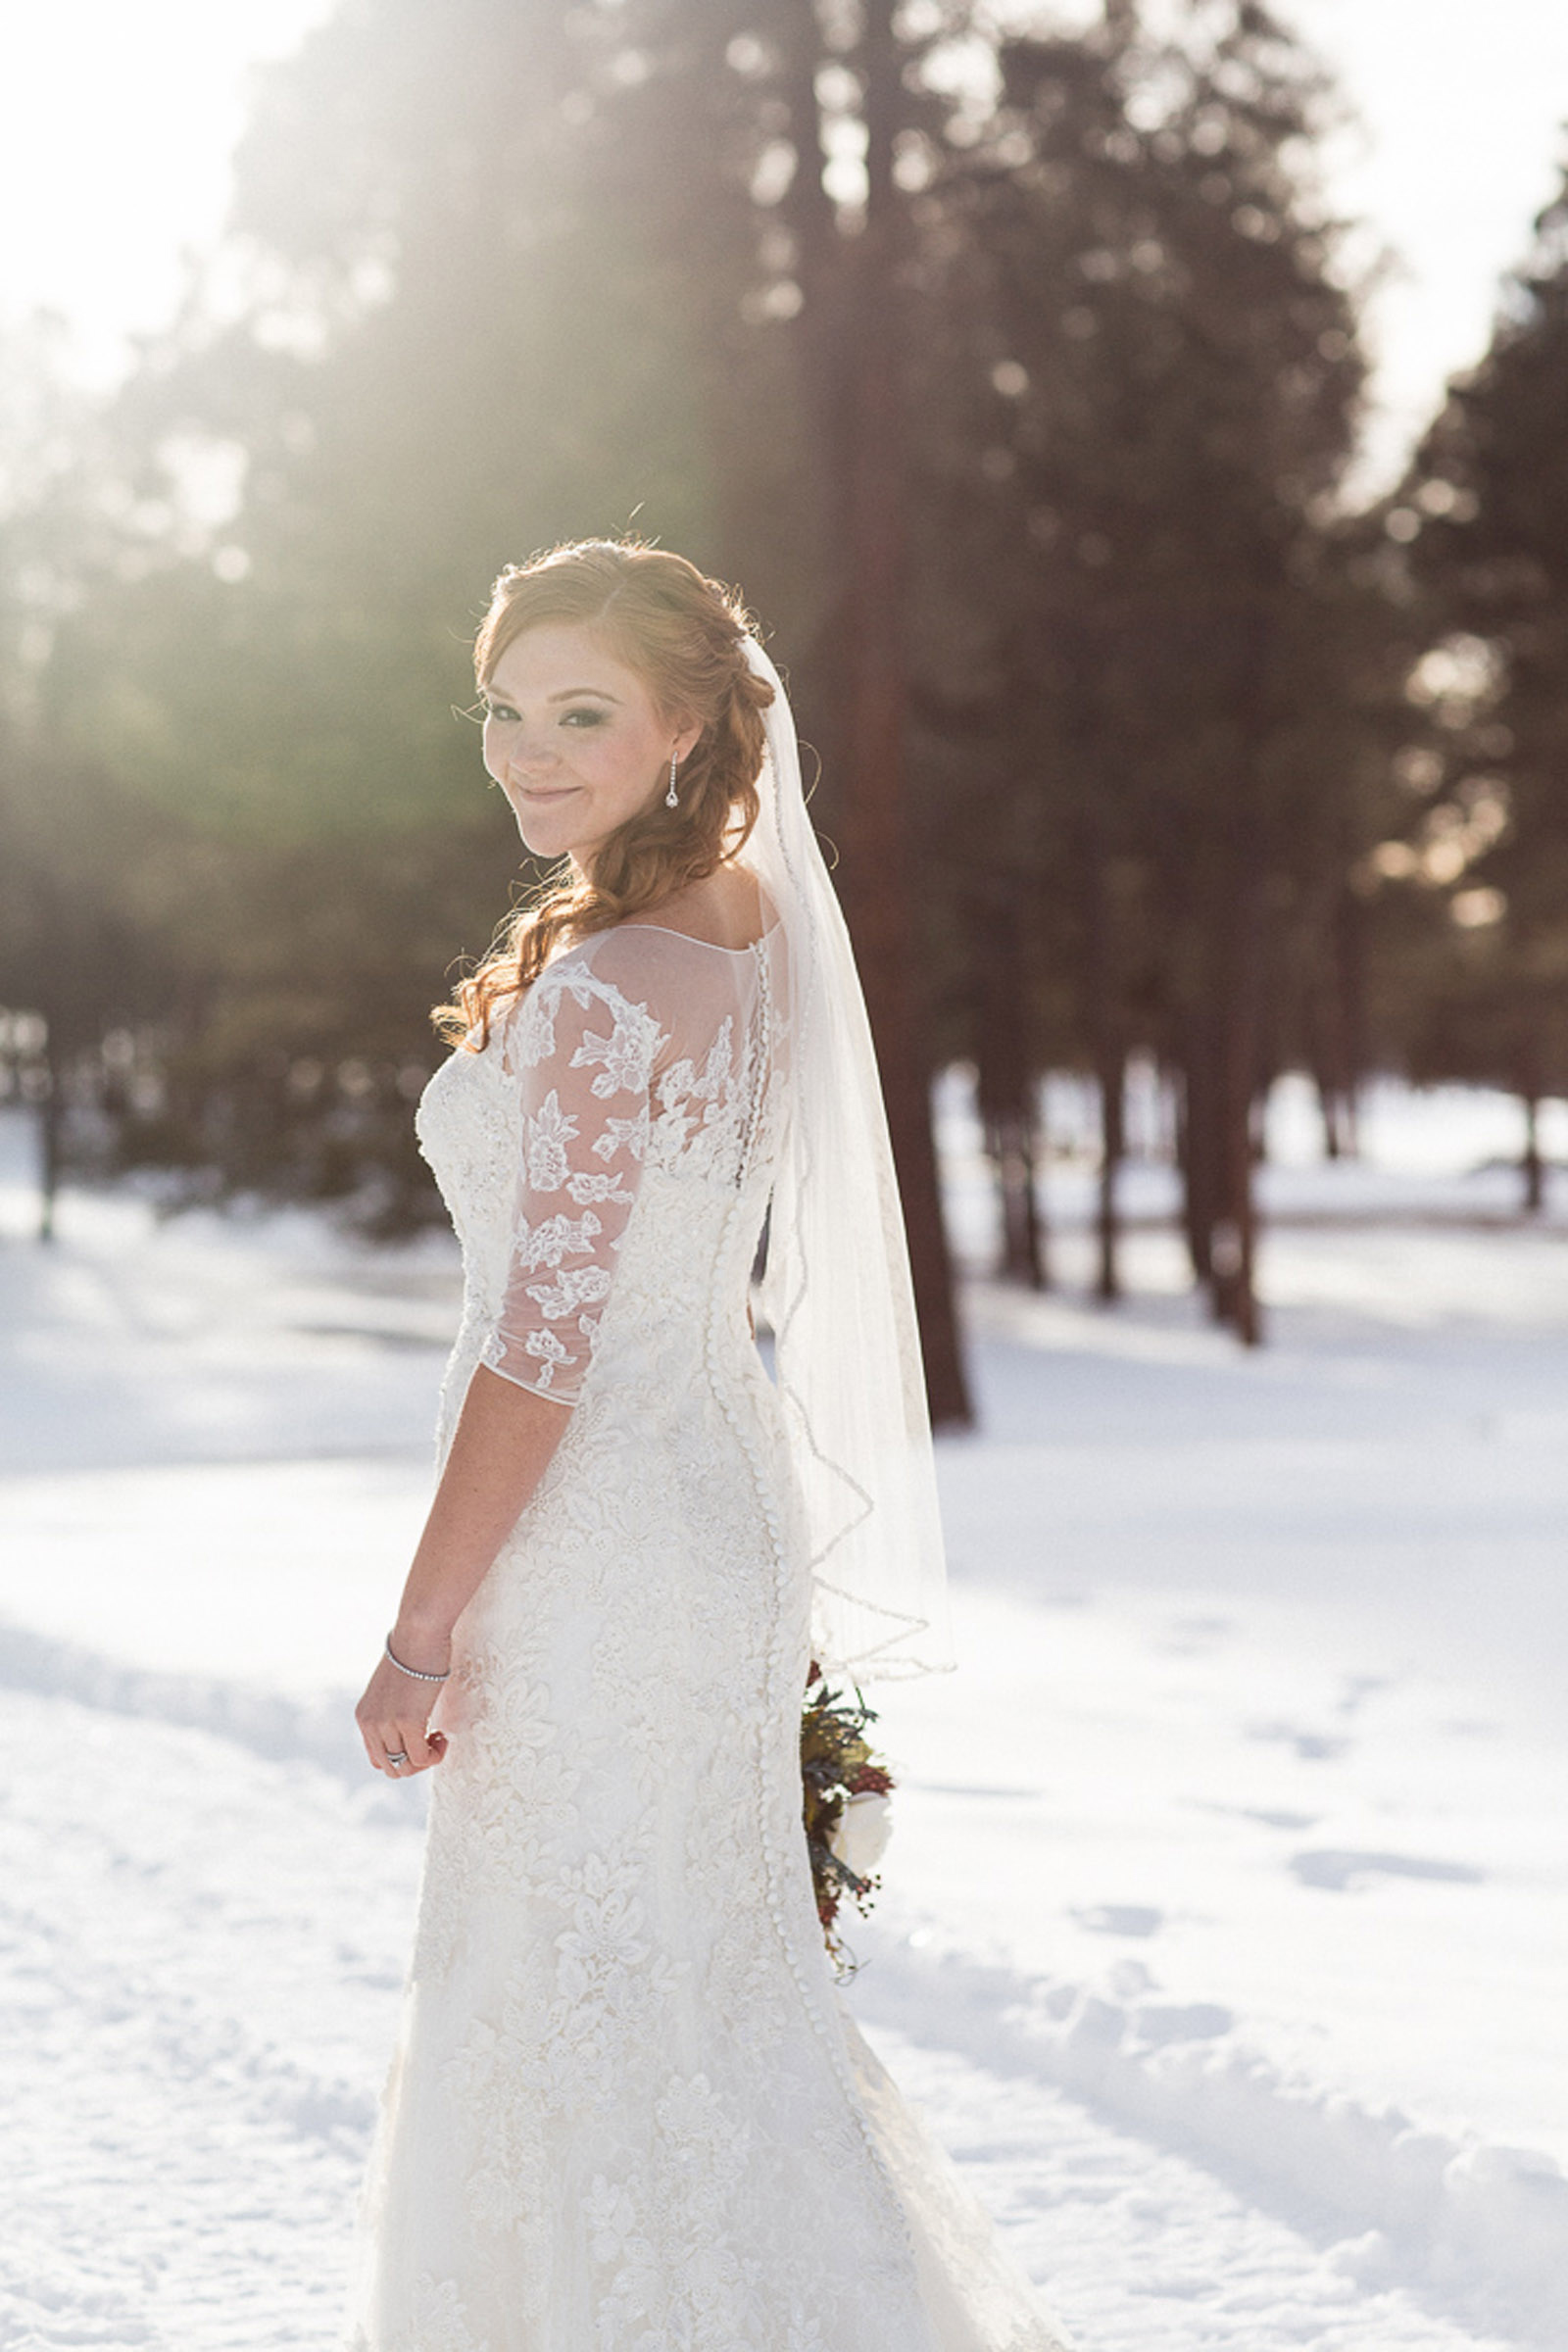 154-wedding-photographer-captures-newlyweds-in-snow-during-a-winter-snow-wedding-in-the-mountains-in-colorado